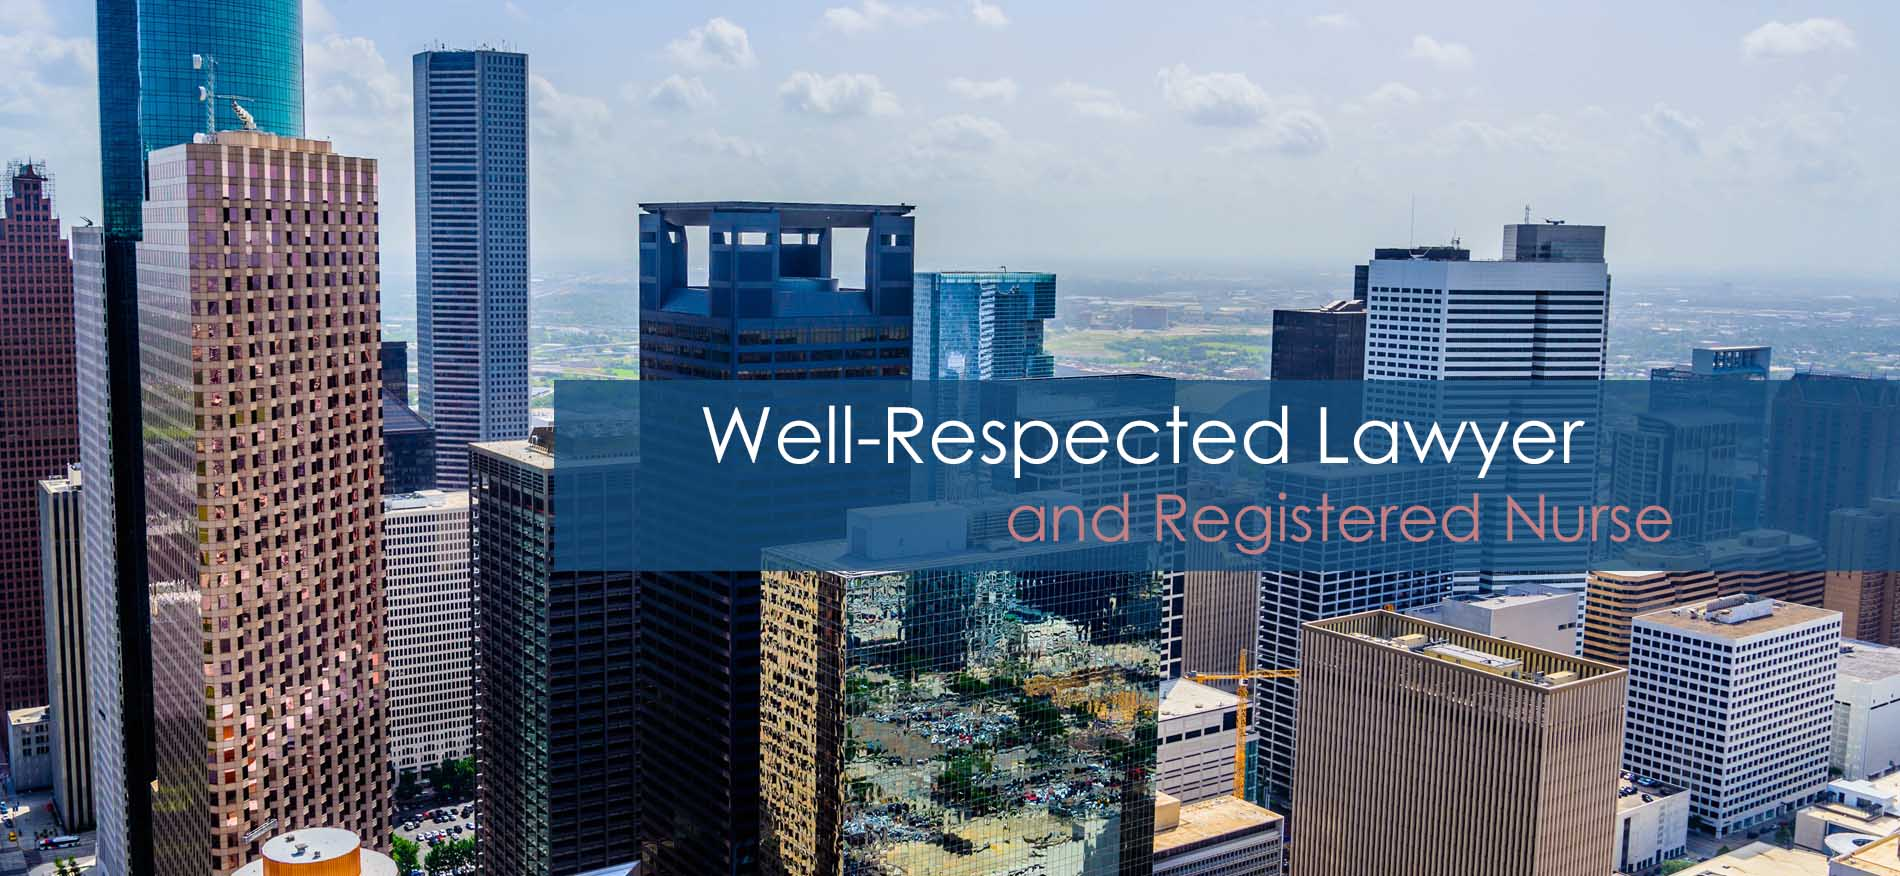 Joyce Stamp Lilly Registered Nurse and Personal Injury Lawyer in Houston, Texas